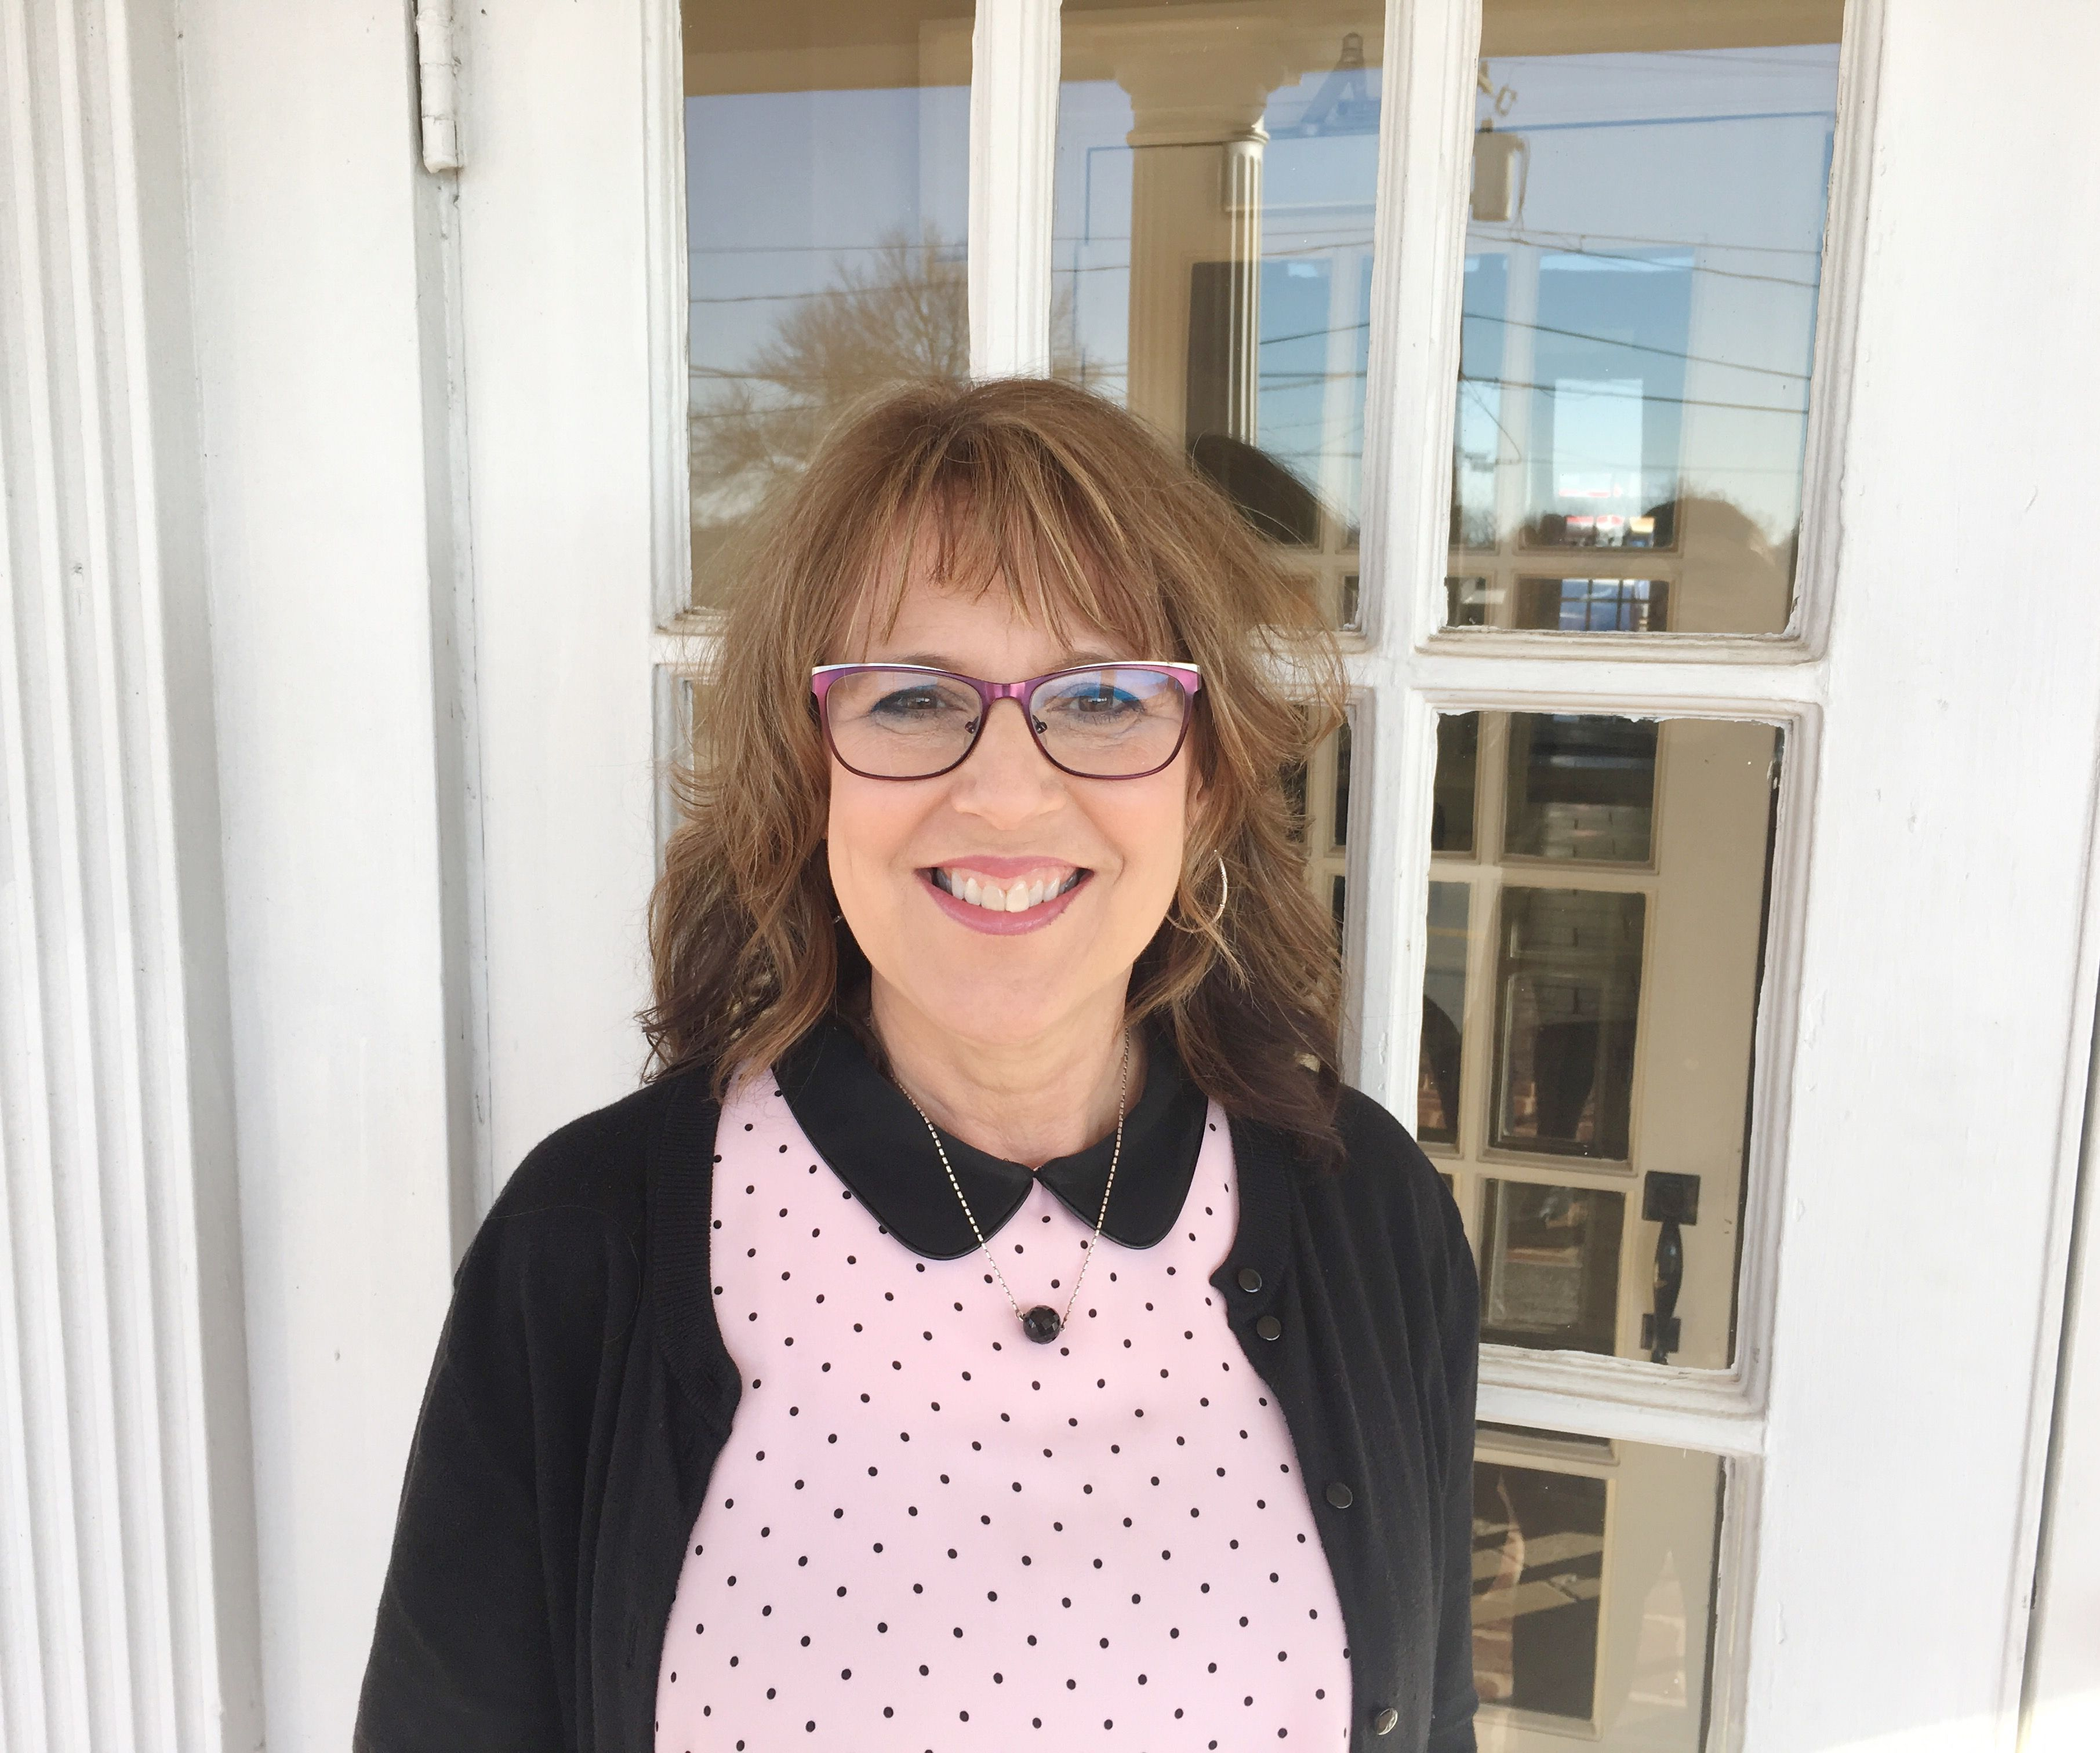 Meet Mary Ellen Price, one of our helpful Customer Service